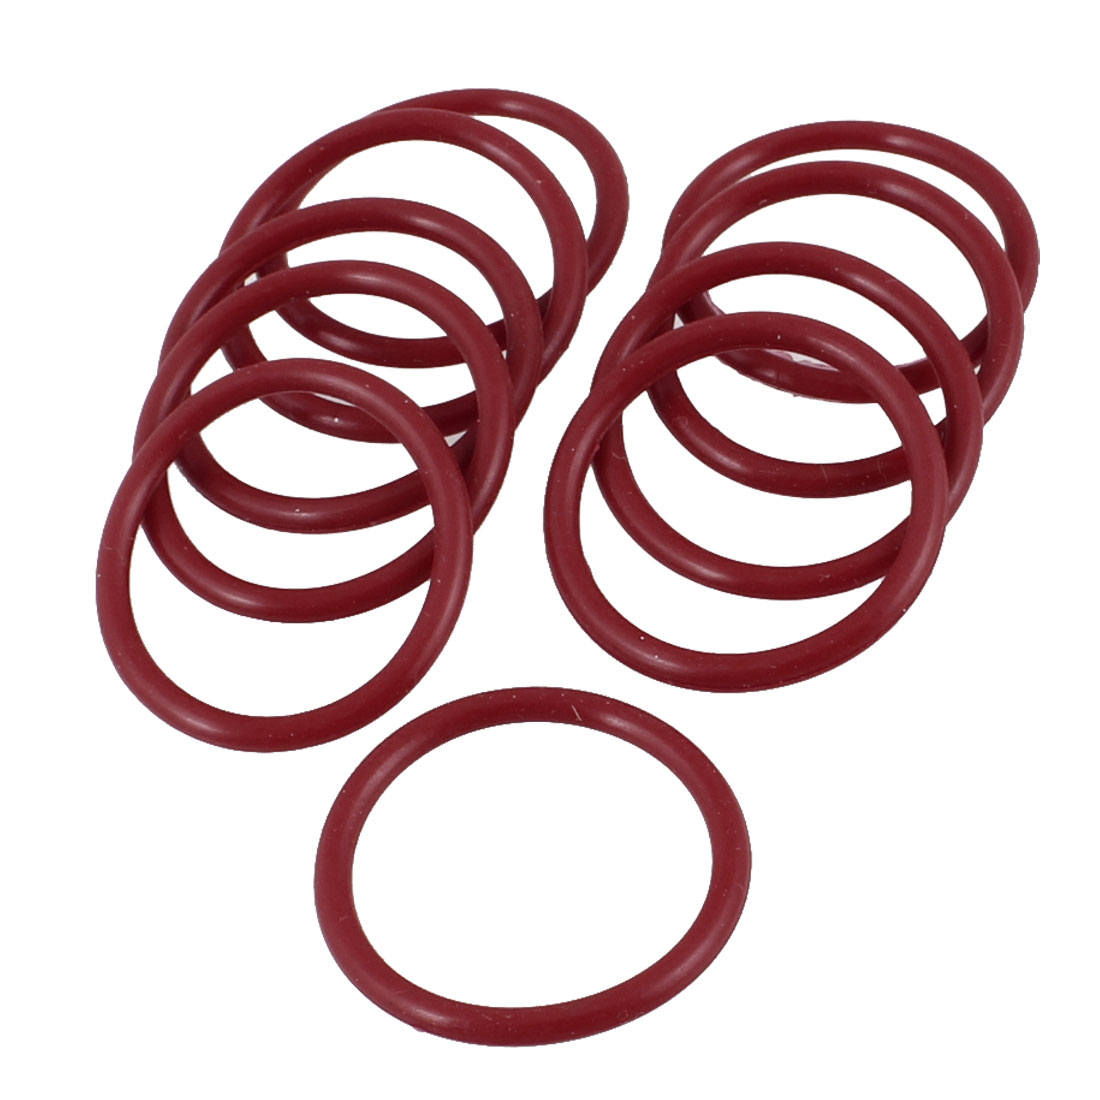 10 Pieces 24mm x 2mm Rubber O-ring Oil Seal Sealing Ring Gaskets Red